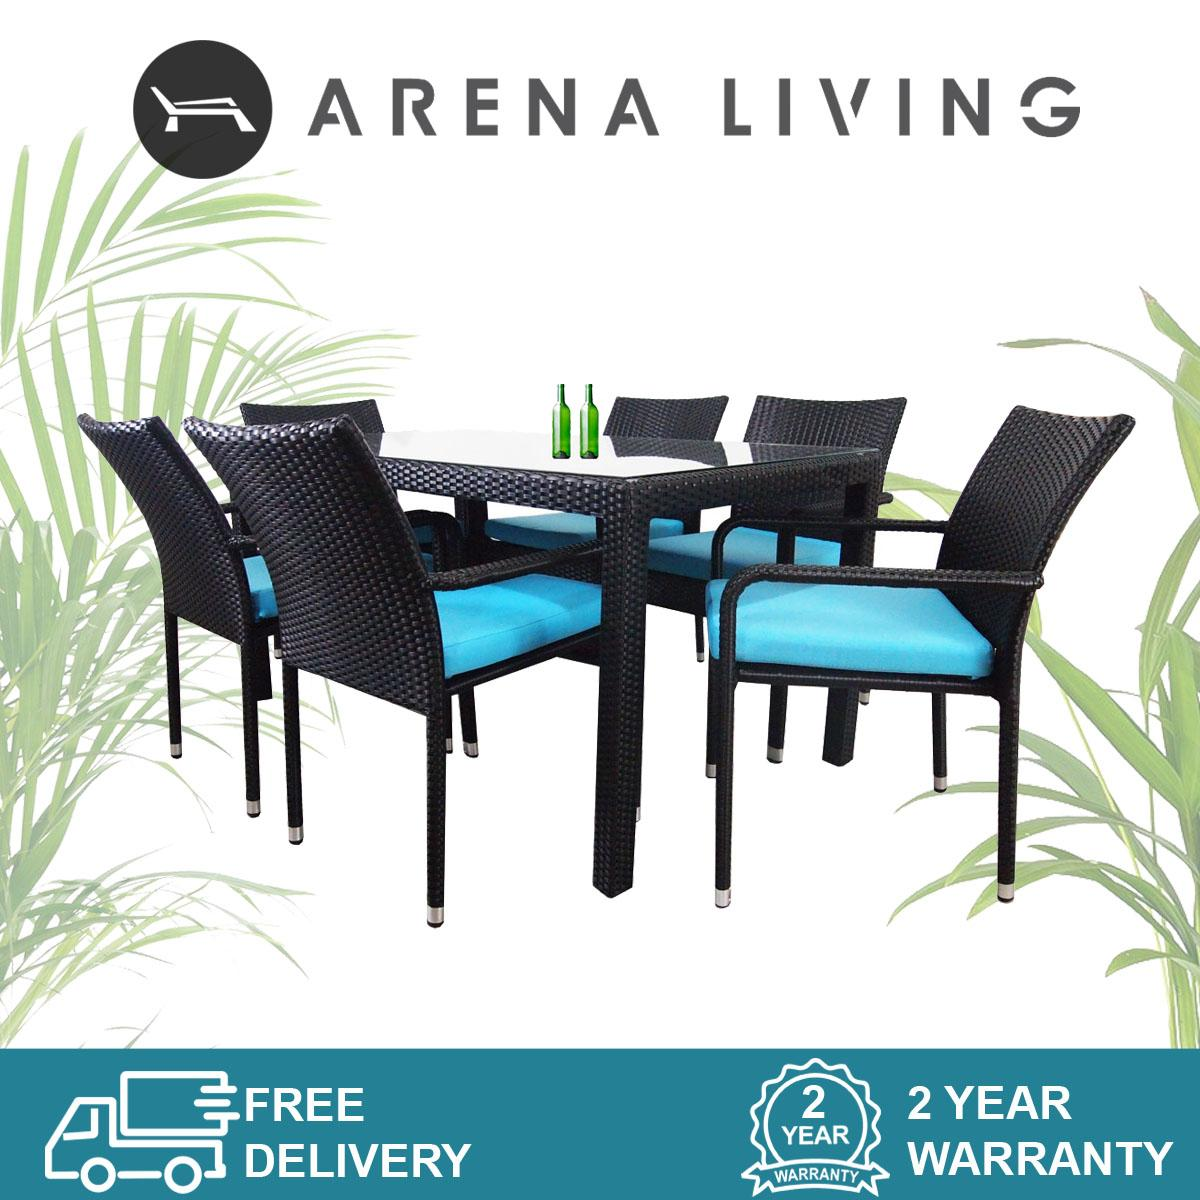 Boulevard 6 Chair Dining Set Blue Cushion, Outdoor Furniture by Arena Living™